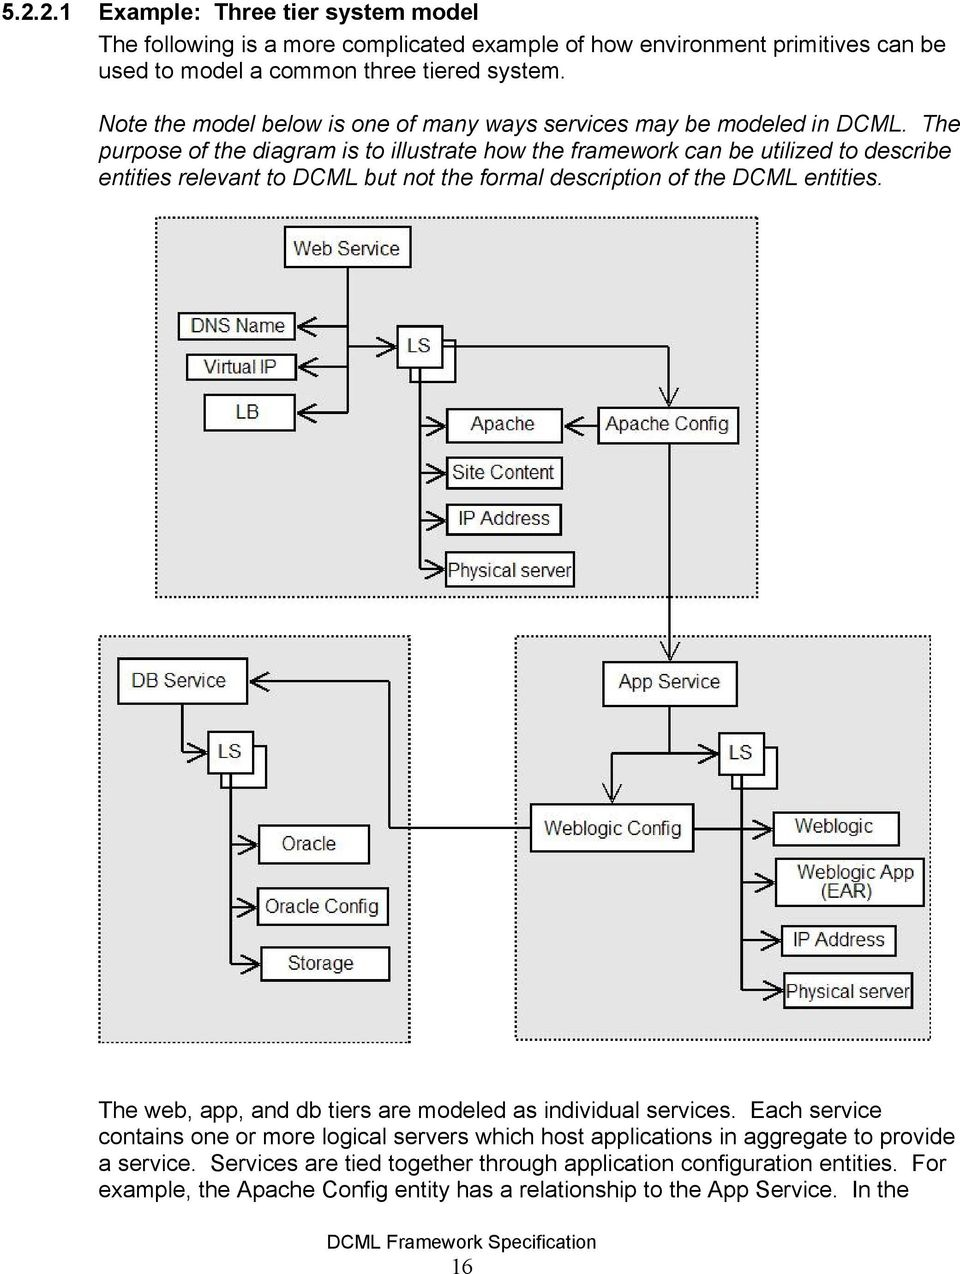 The purpose of the diagram is to illustrate how the framework can be utilized to describe entities relevant to DCML but not the formal description of the DCML entities.